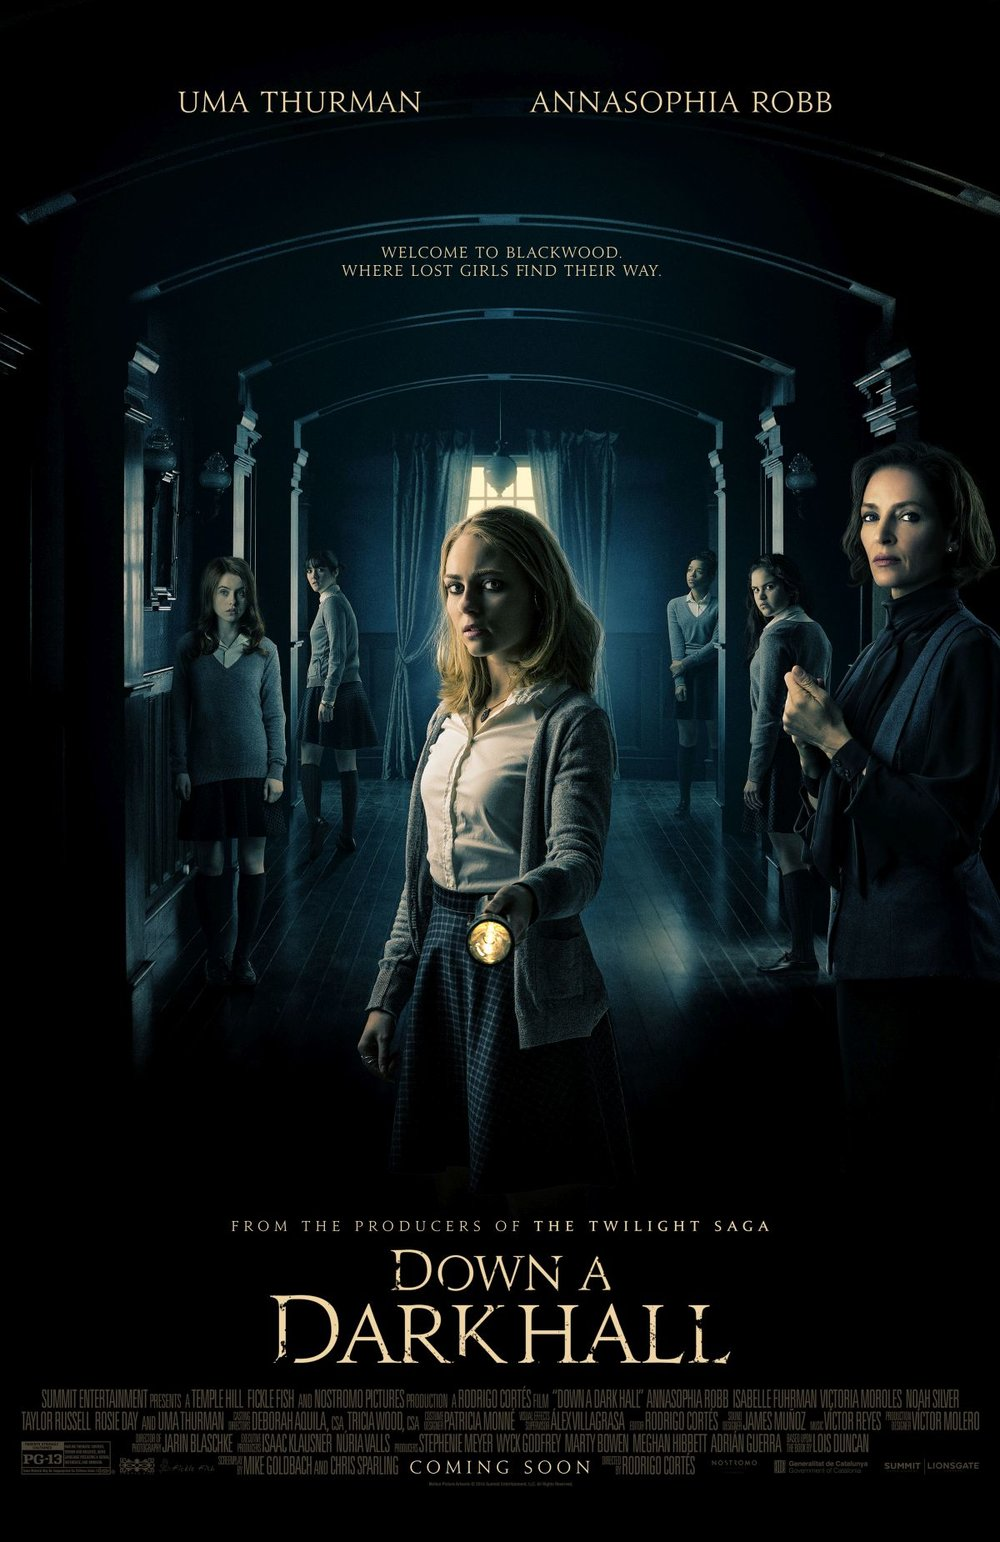 trailer-for-the-supernatural-horror-film-down-a-dark-hall-with-uma-thurman-and-annasophia-robb1